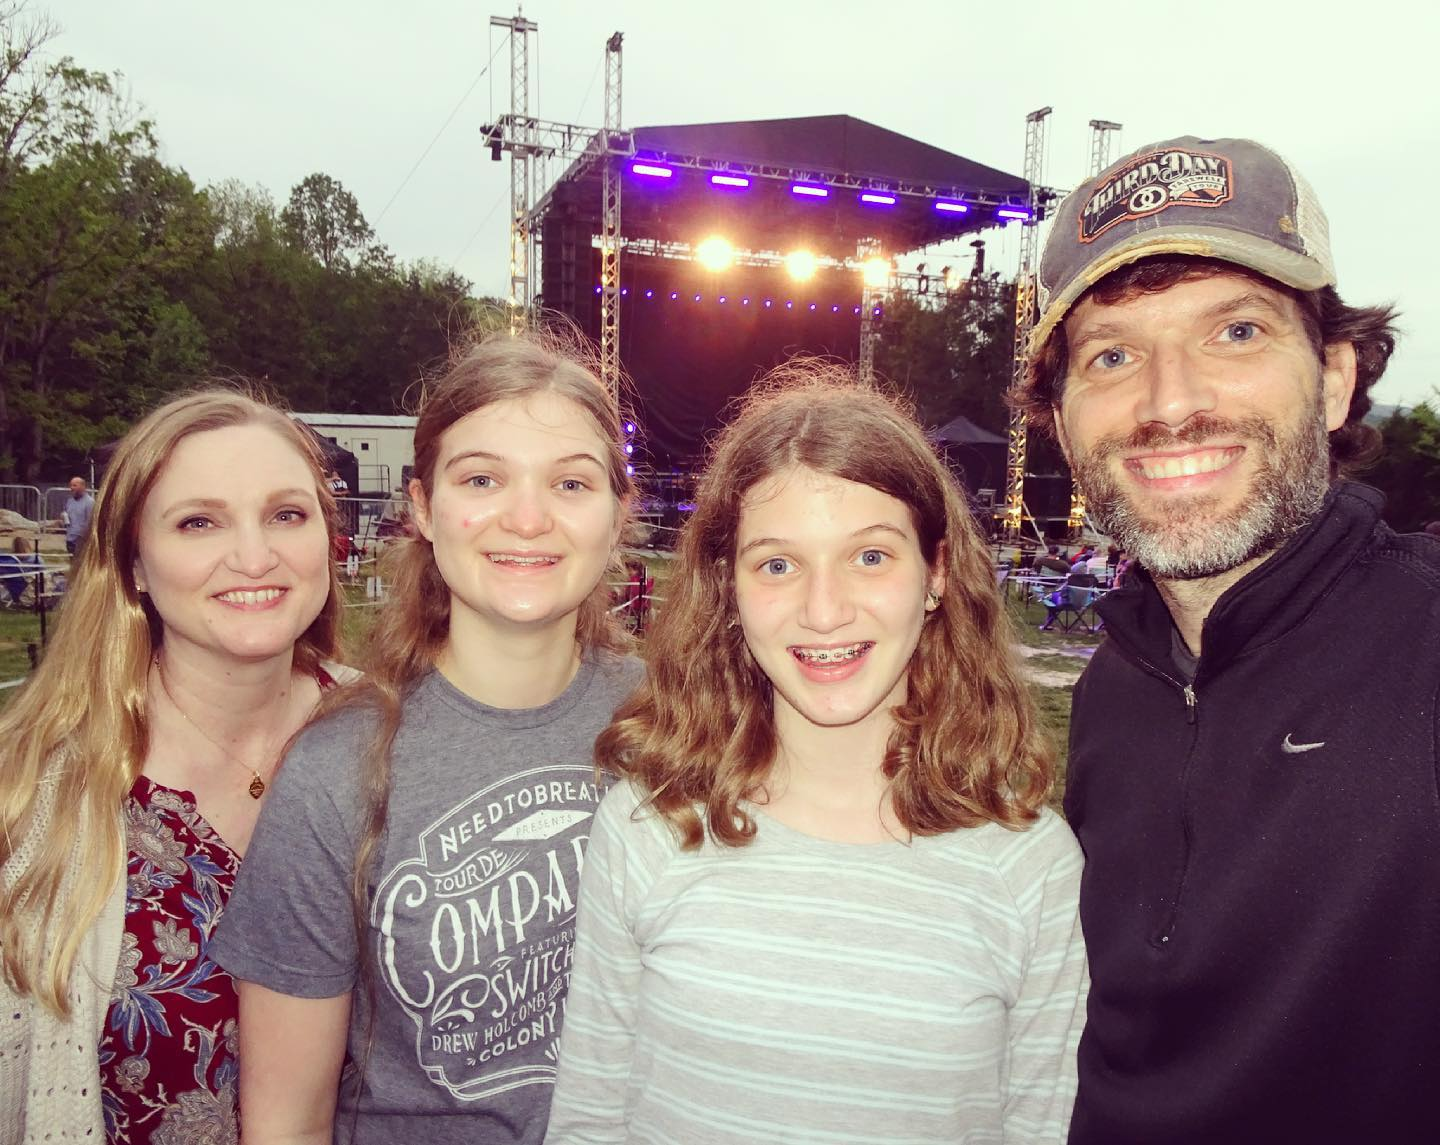 Drew Holcomb (@drewholcombmusic) and the Neighbors at the @thecavernstn - Live Music!!! #family #music #livemusic